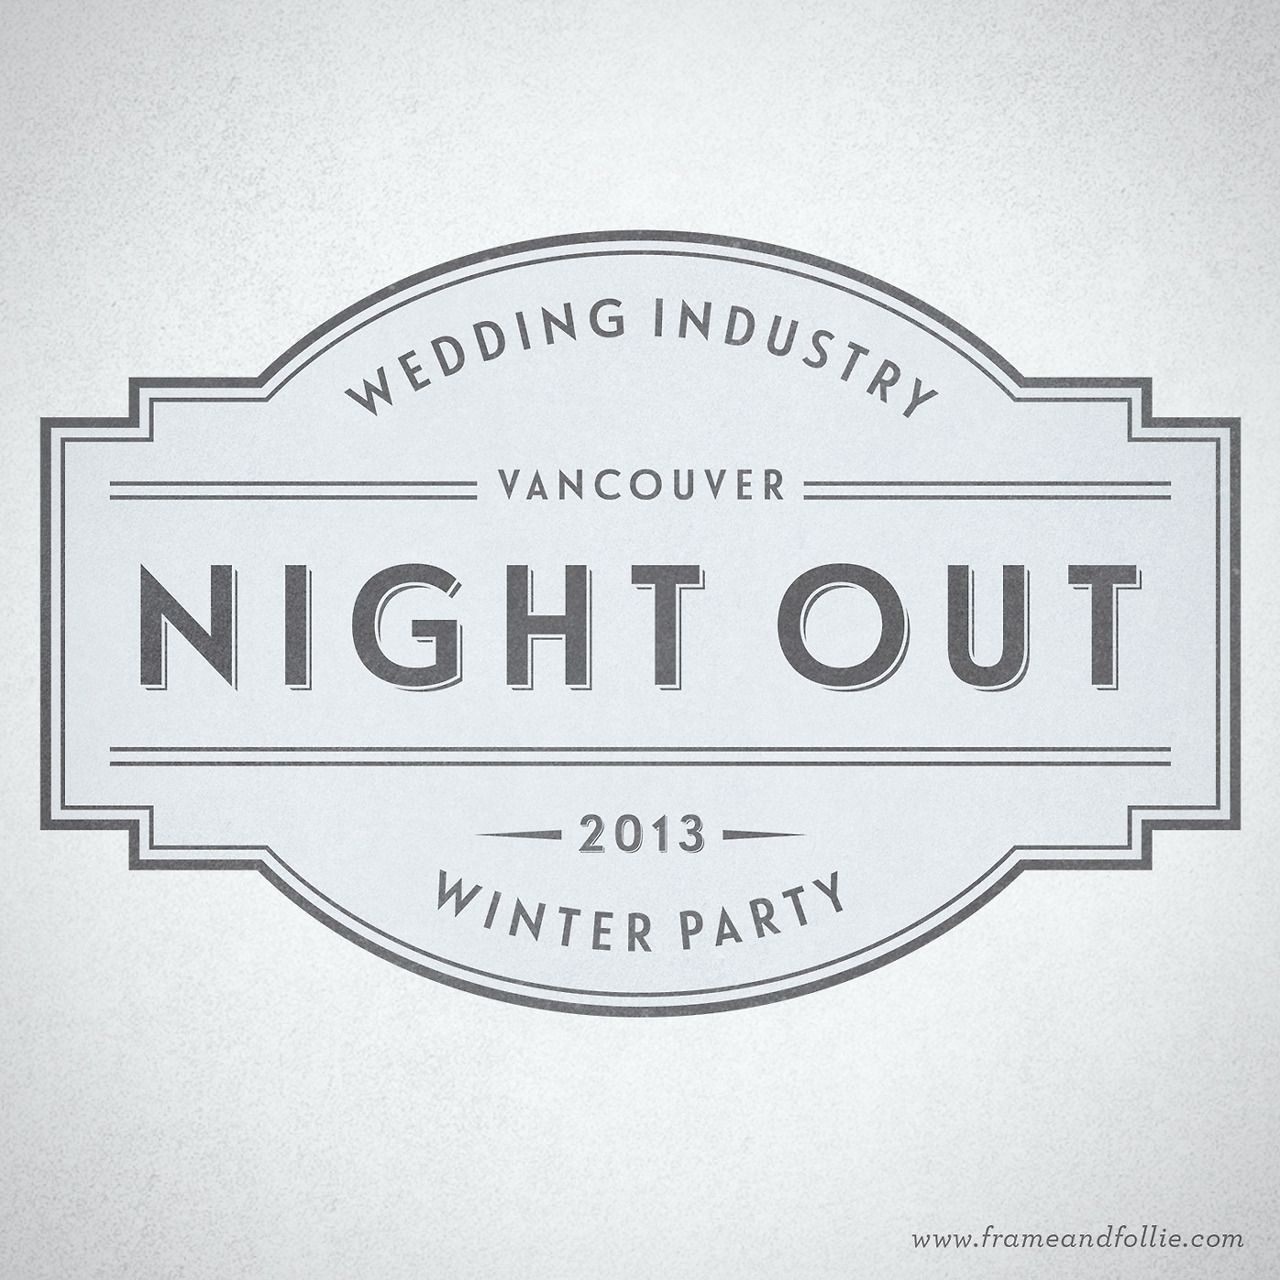 Wedding Industry Night Out | Vintage-inspired logo design by Frame & Follie | www.frameandfollie.tumblr.com | www.frameandfollie.com